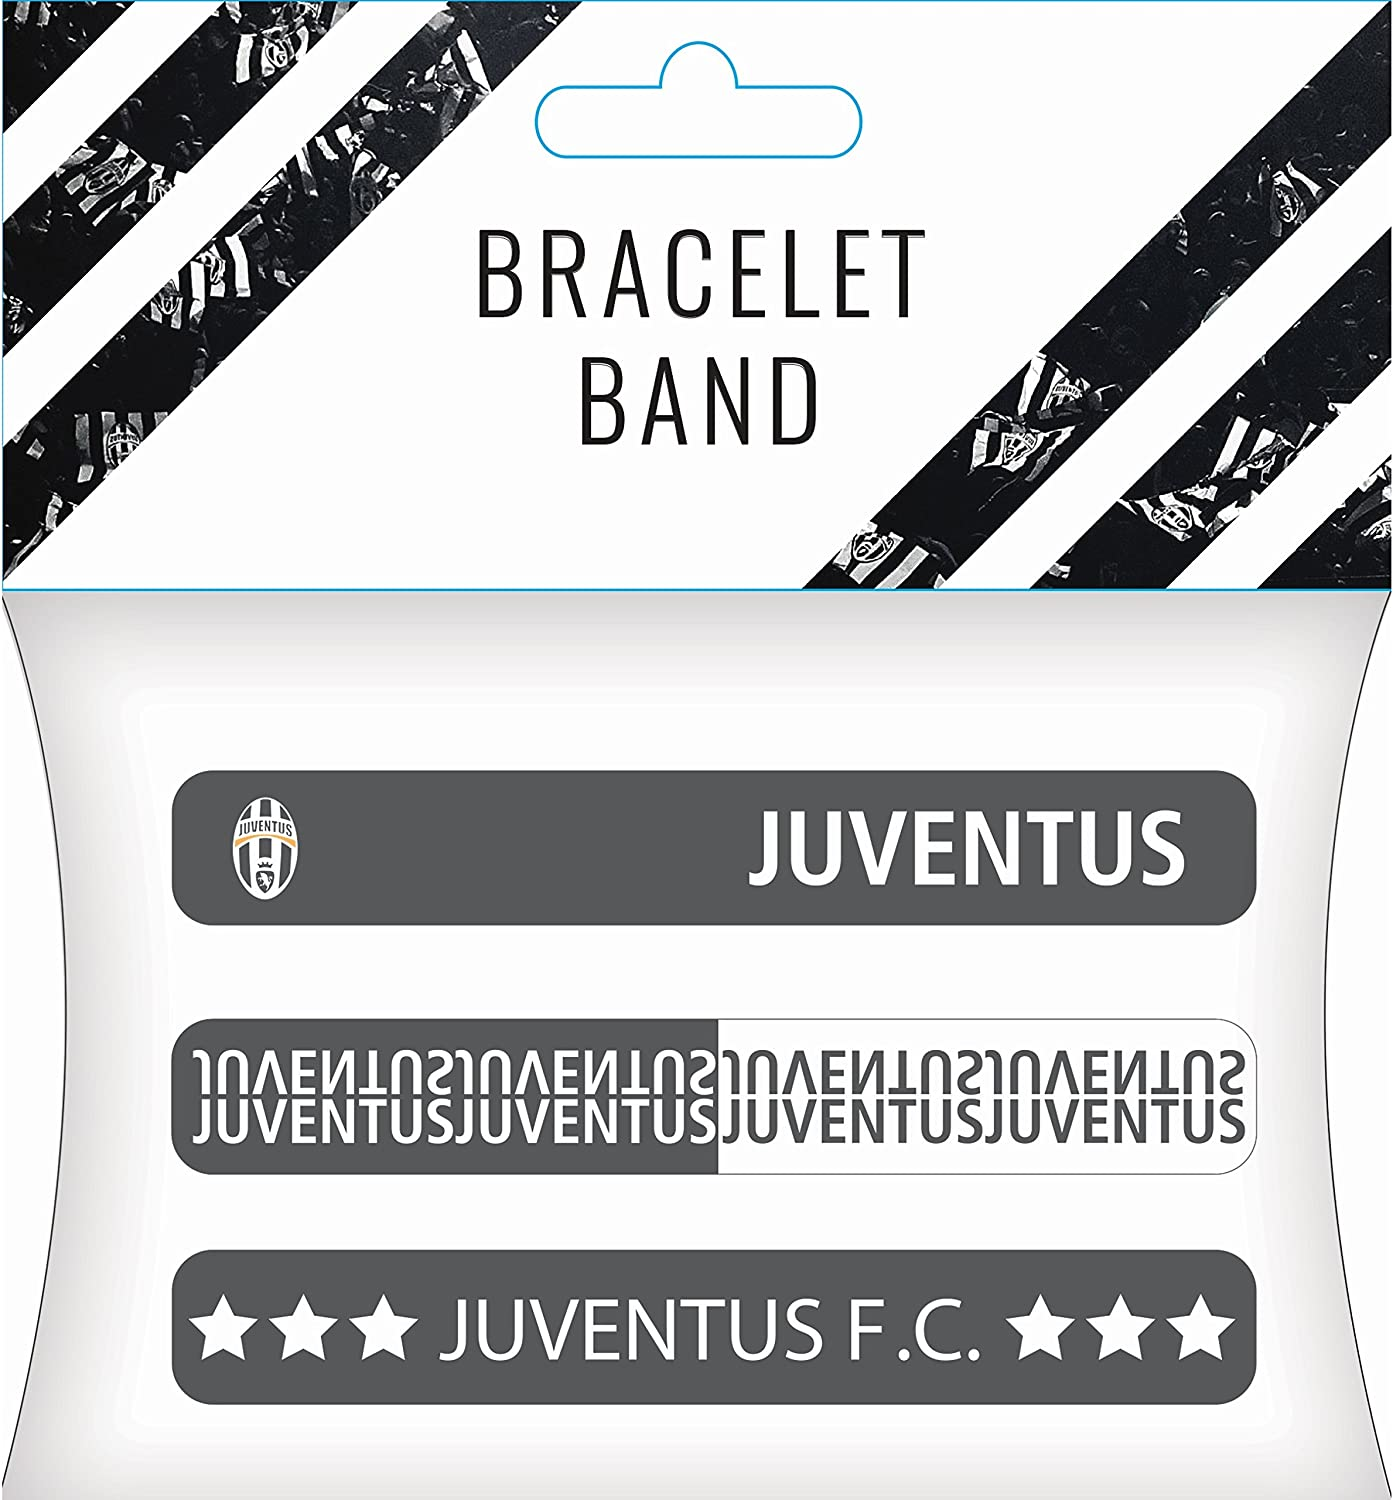 Juventus F C Juventus Bracelet Bands Set Of 3 Officially Licensed Ships From Usa Amazon Co Uk Sports Outdoors